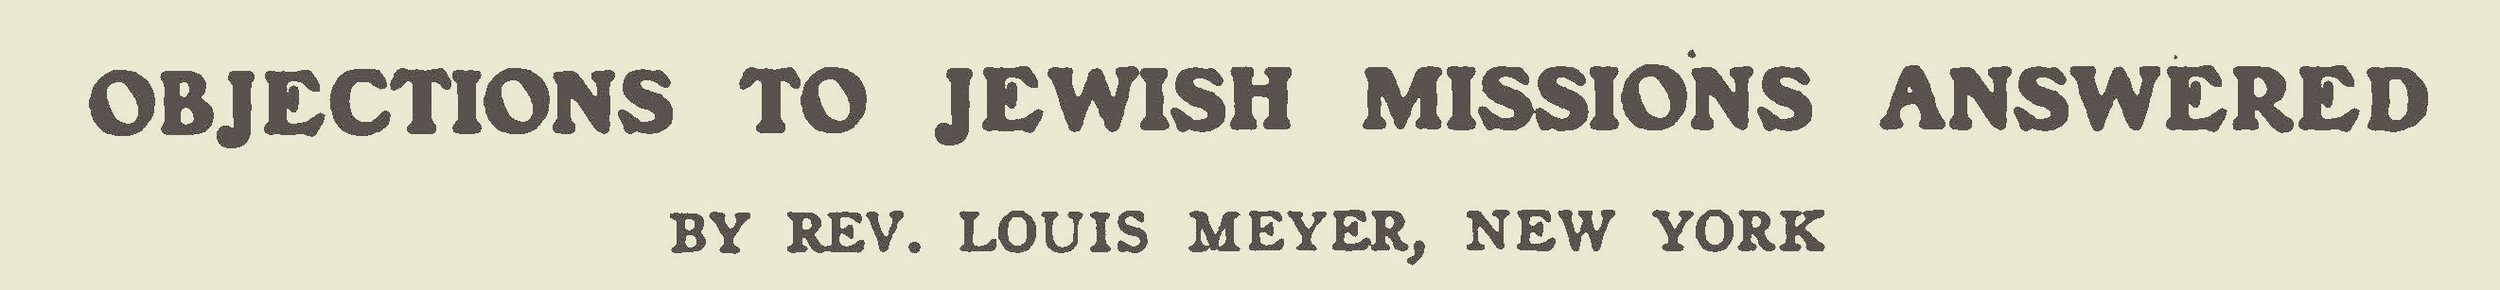 Meyer, Louis, Objections to Jewish Missions Answered Title Page.jpg